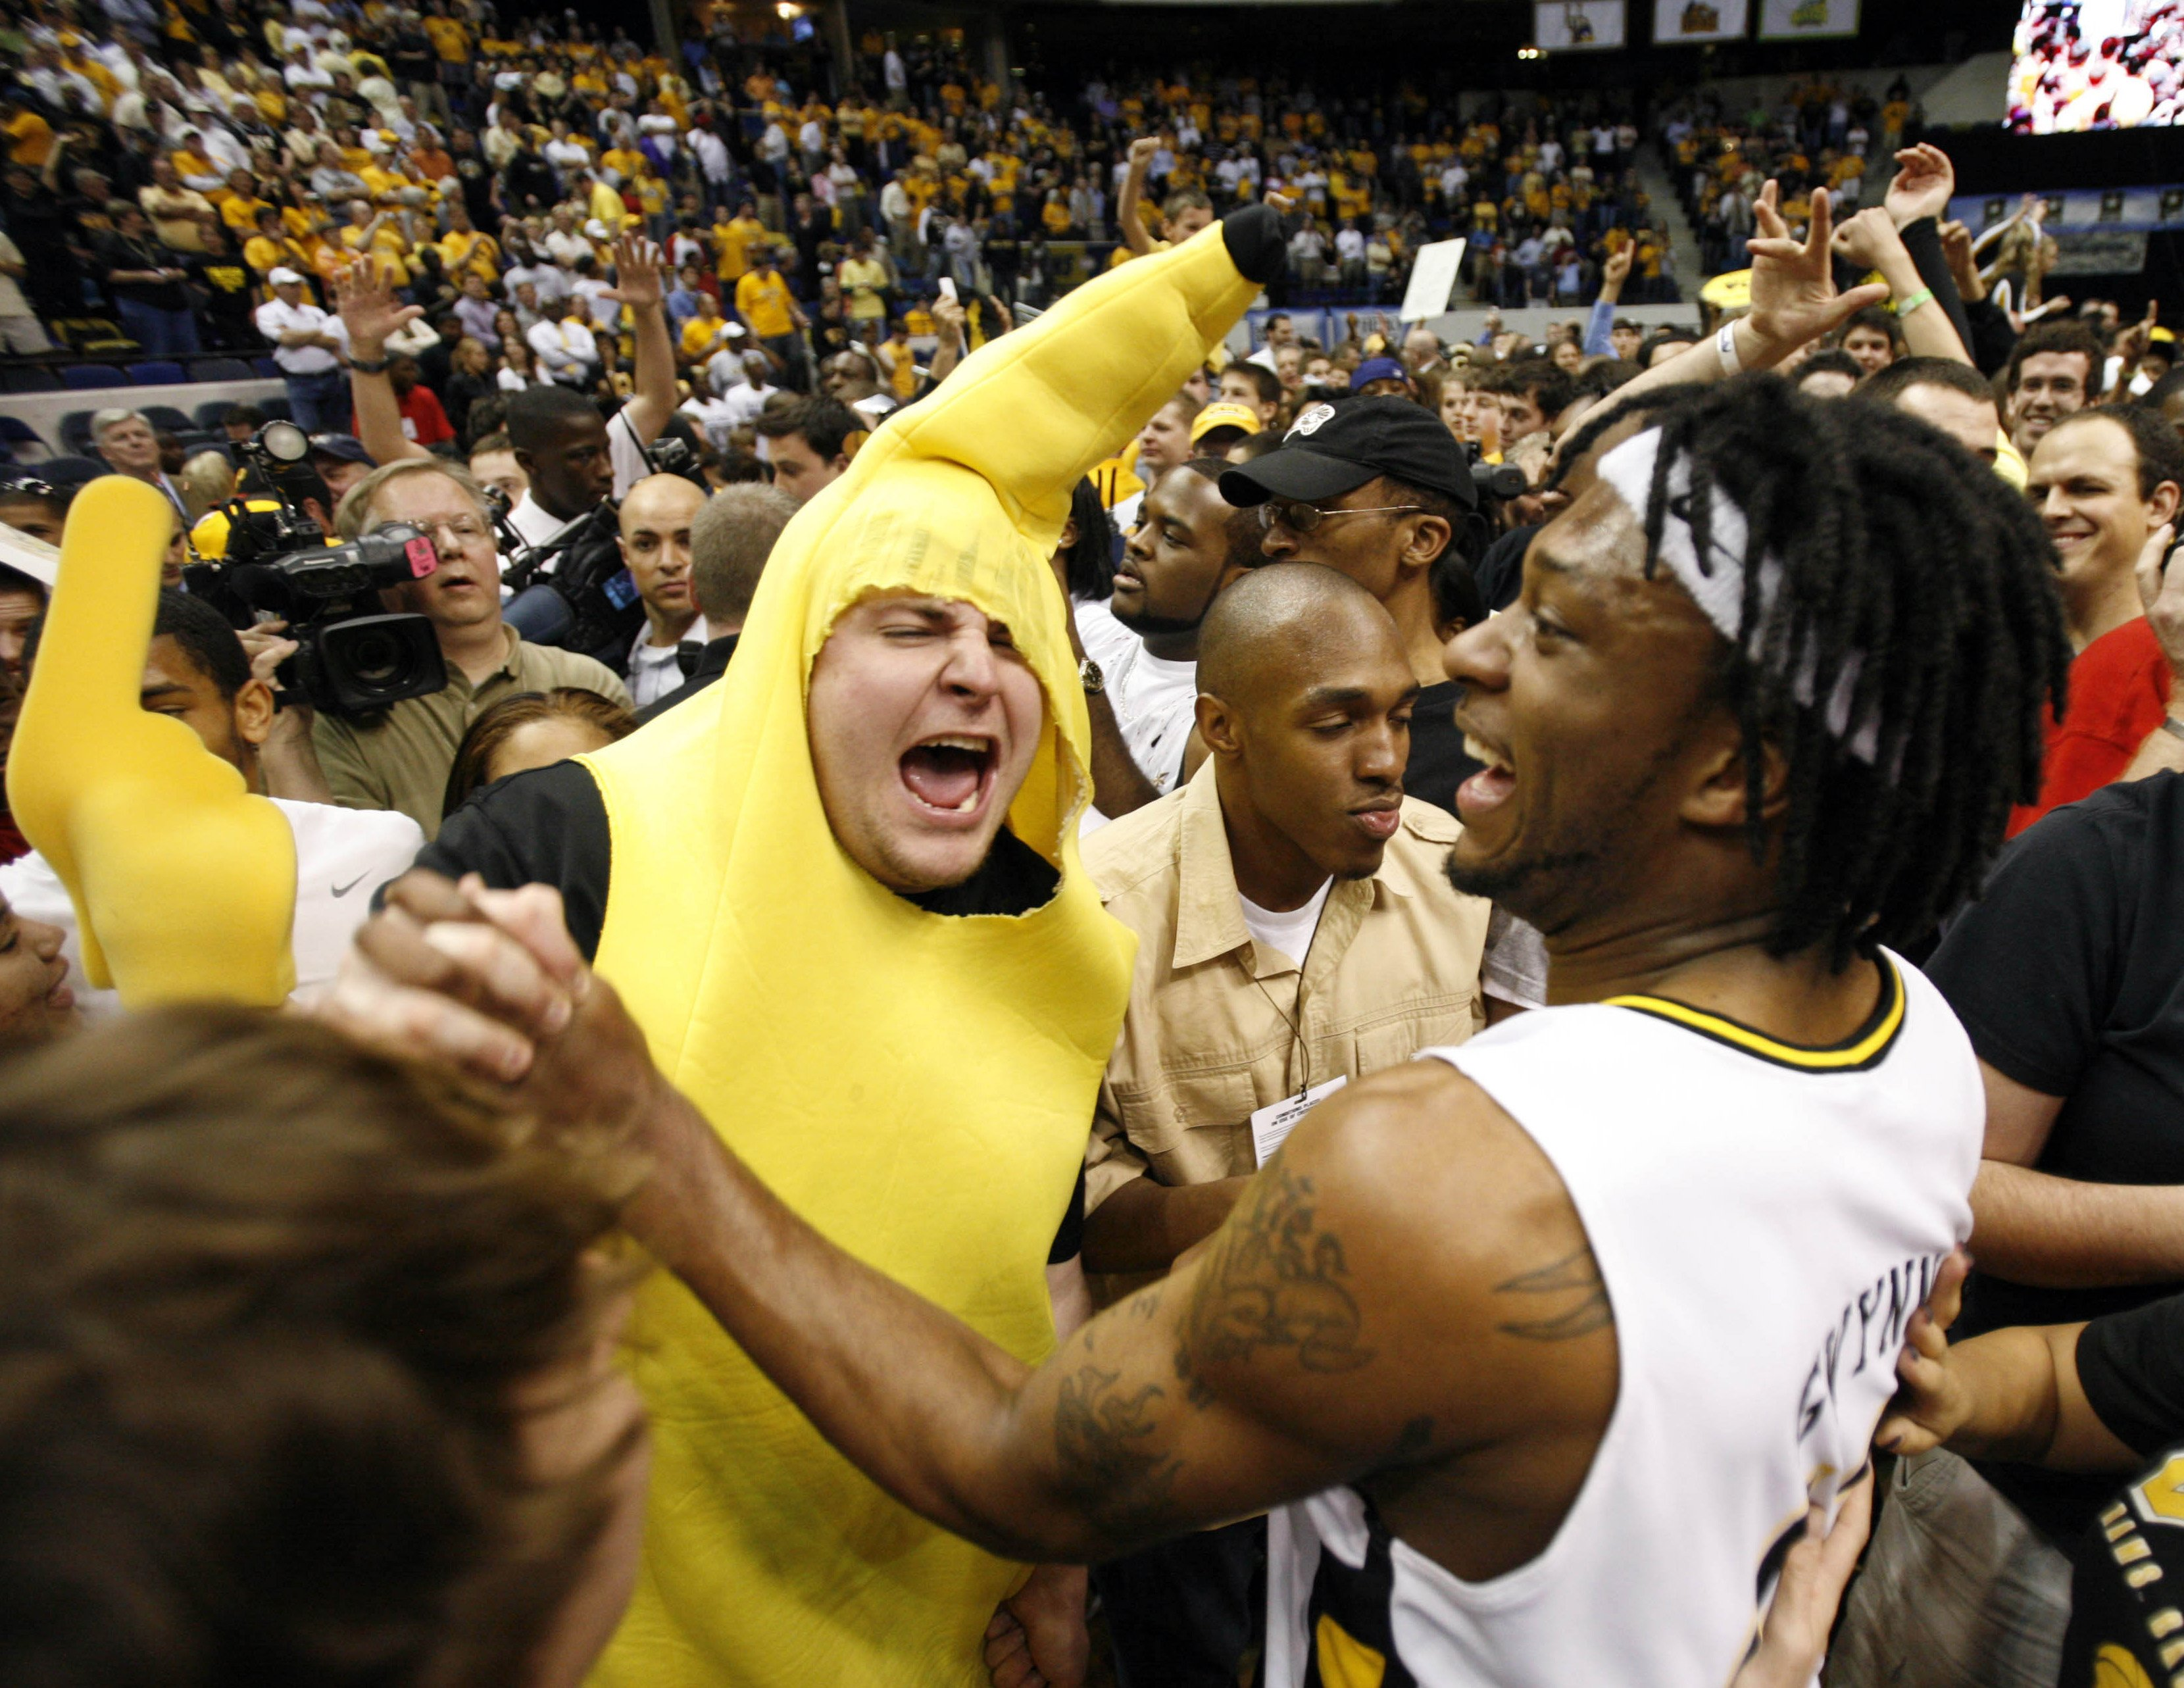 This is Why We Love Championship Week (photo credit: AP/Steve Helber)